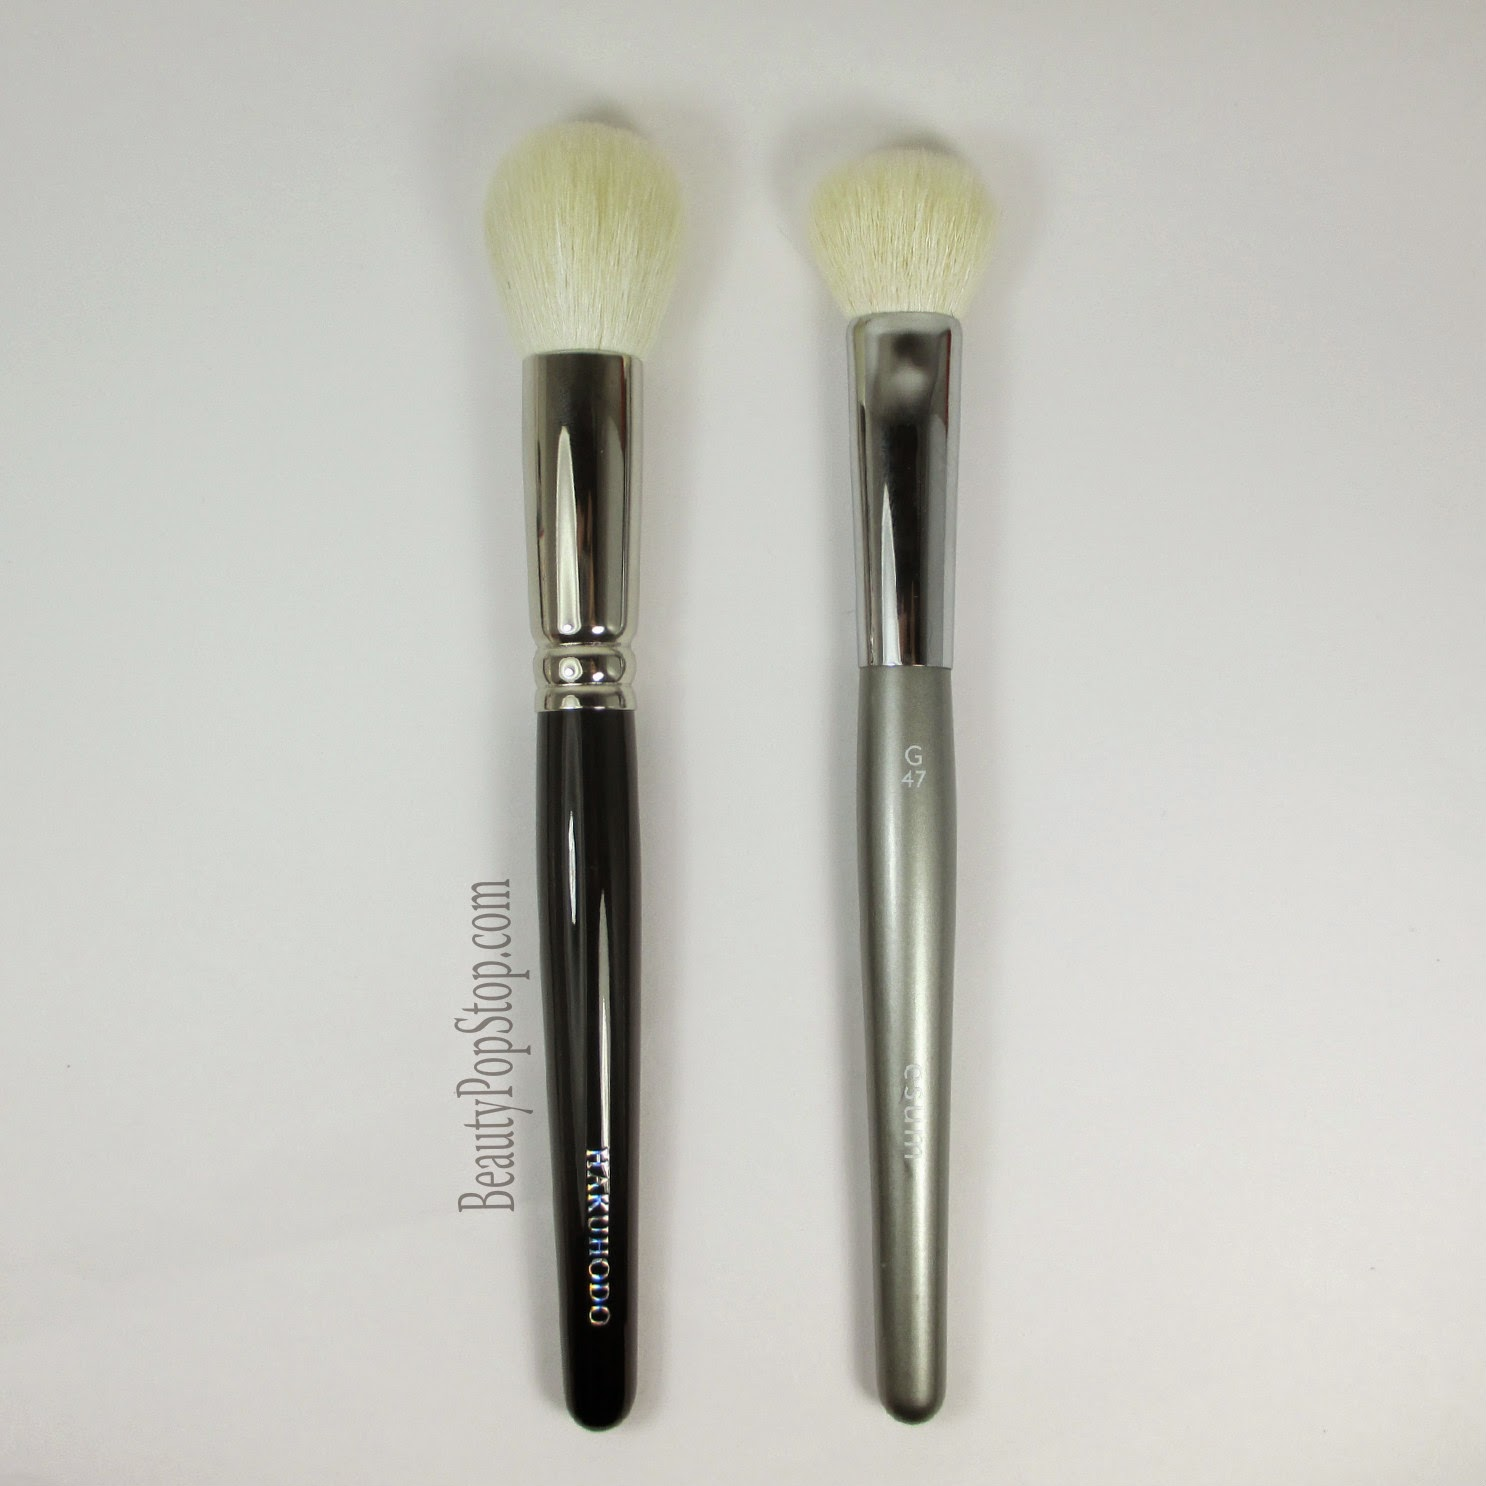 hakuhodo j210 vs esum g47 makeup brush comparison